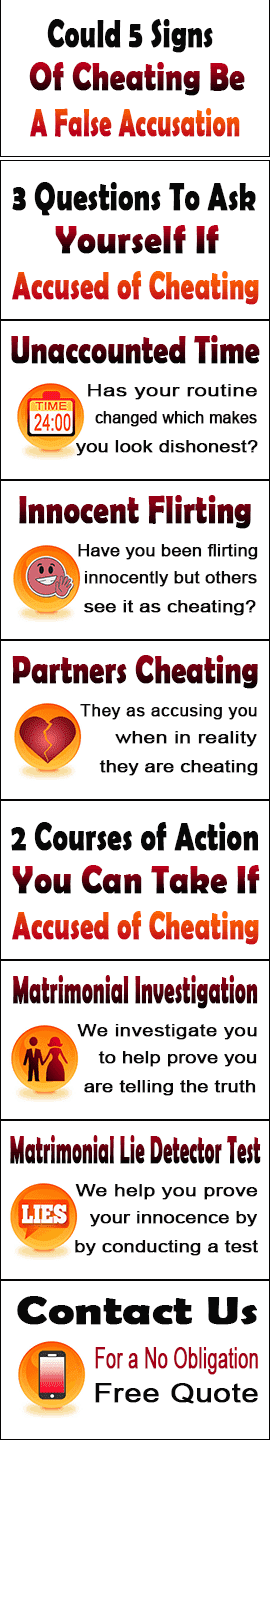 Could 5 Signs Of Cheating In Warrington Be A Misplaced